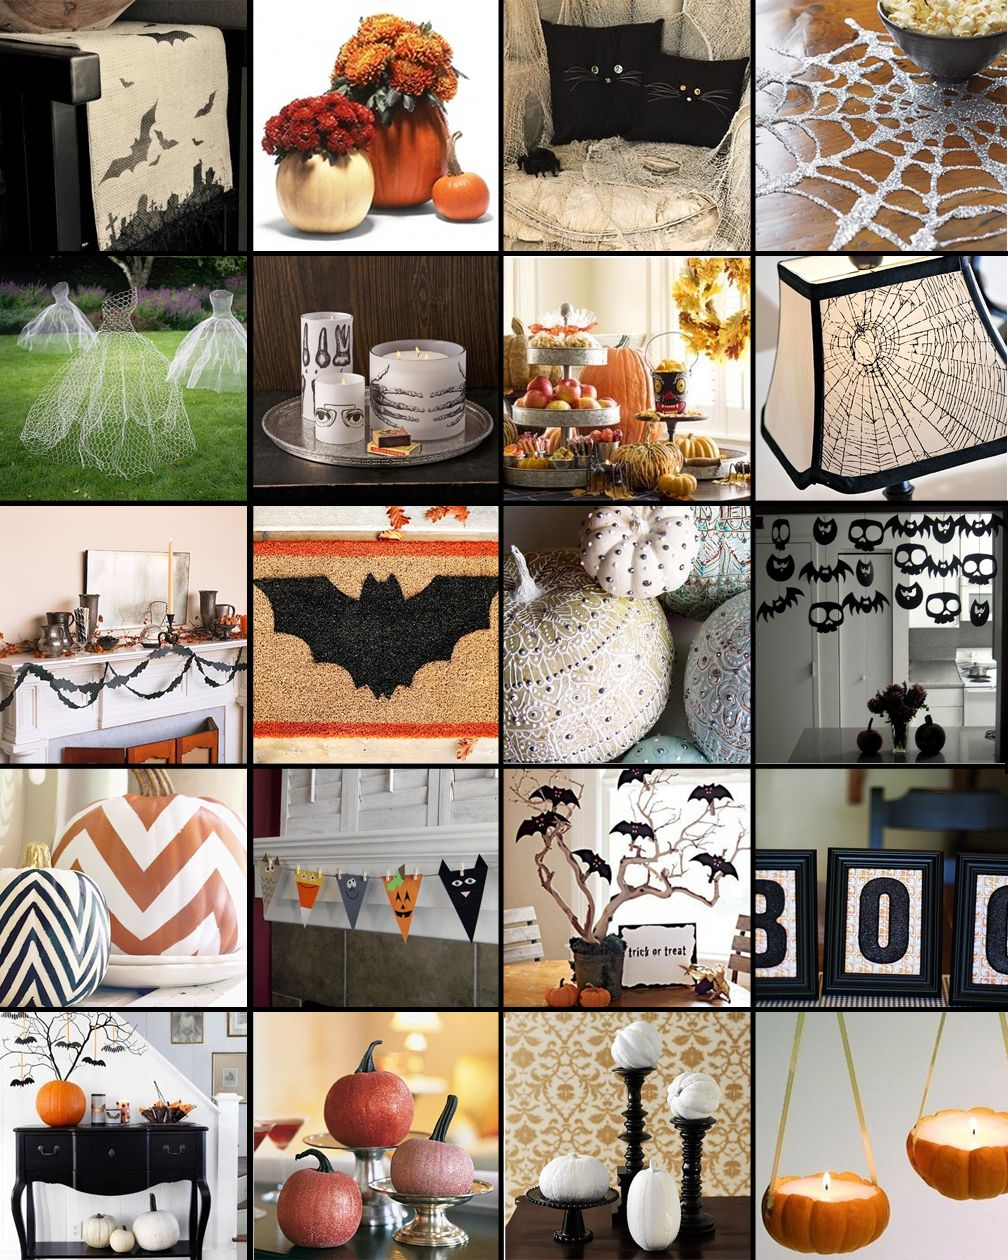 halloween decorations | DIY Halloween decorations & Pinterest Wednesday: 20 DIY decorations for Halloween | DIY ...